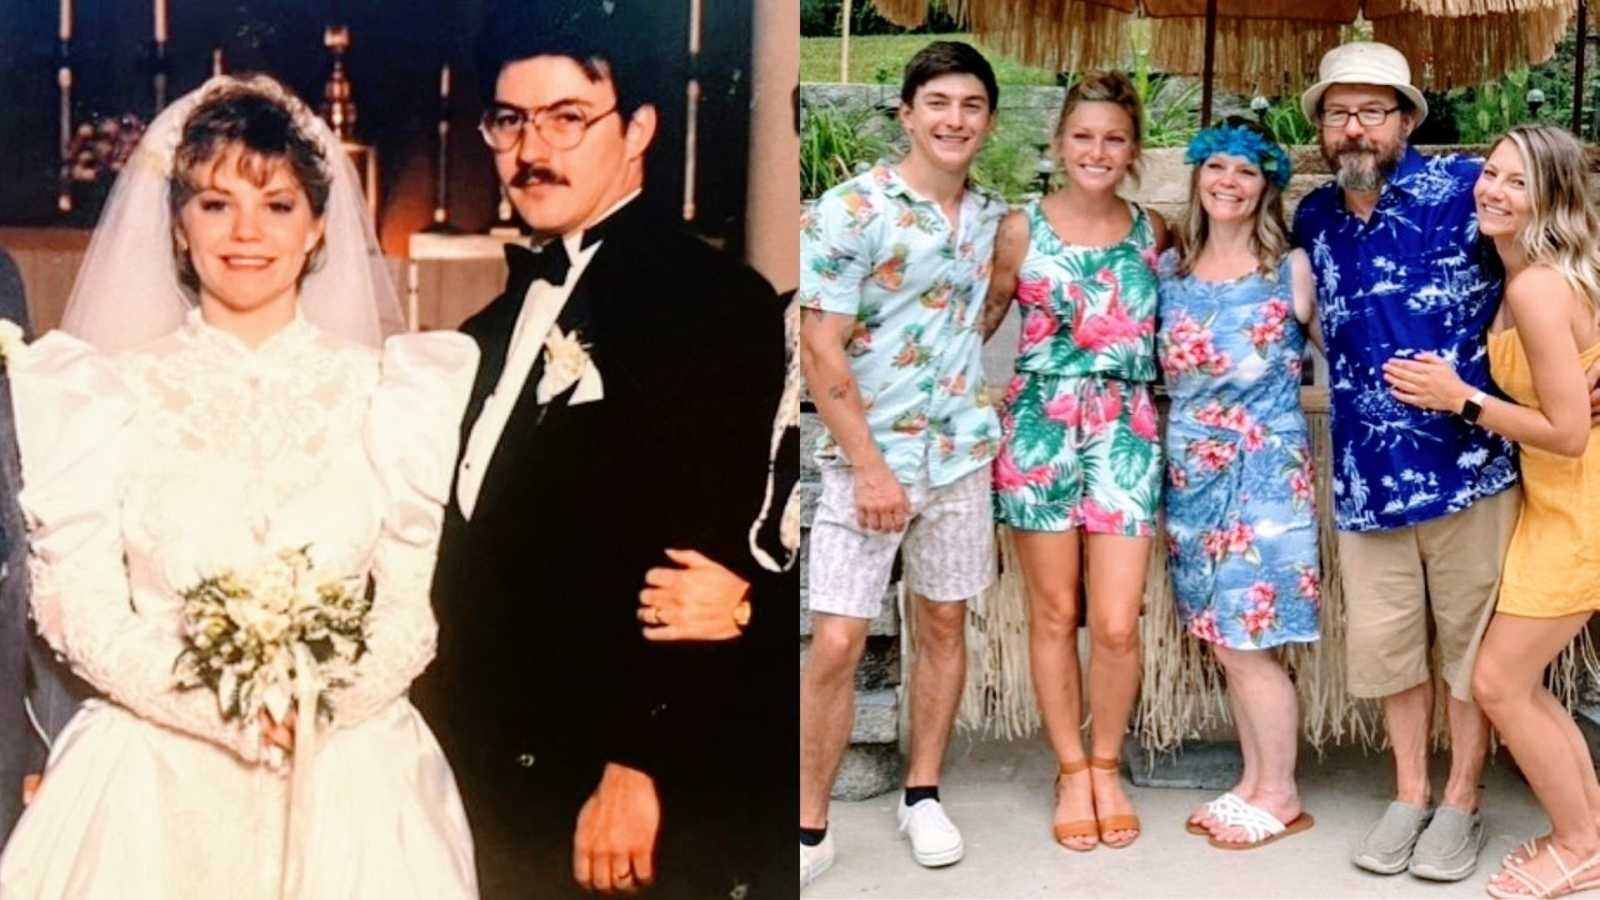 Soulmates get married twice, once after man recovers from alcoholism